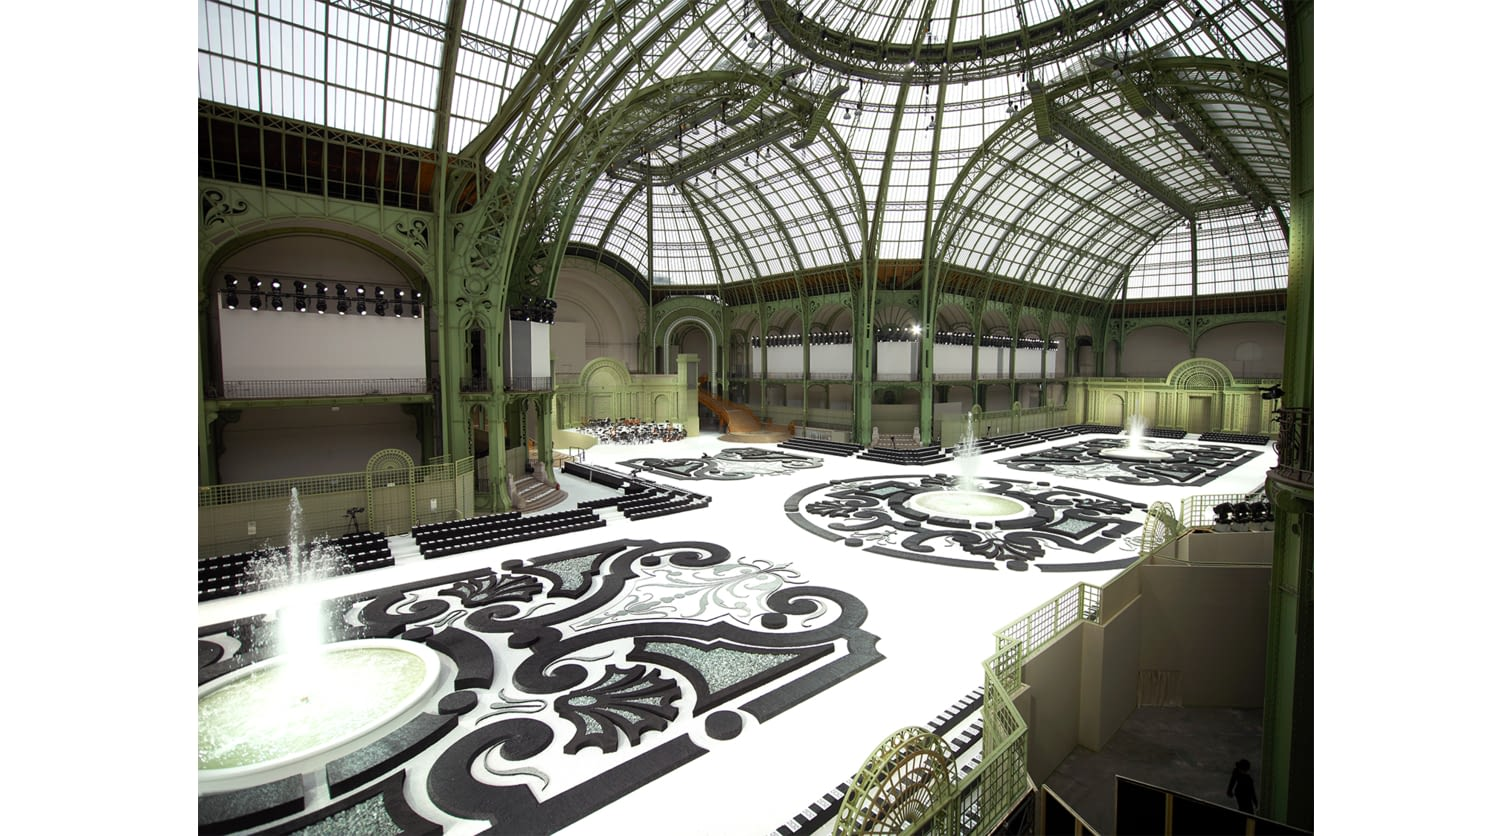 08_CHANEL_COLLECTION_PAP_PE_2011_LES_JARDINS_OLIVIER_SAILLANT_LD.jpg